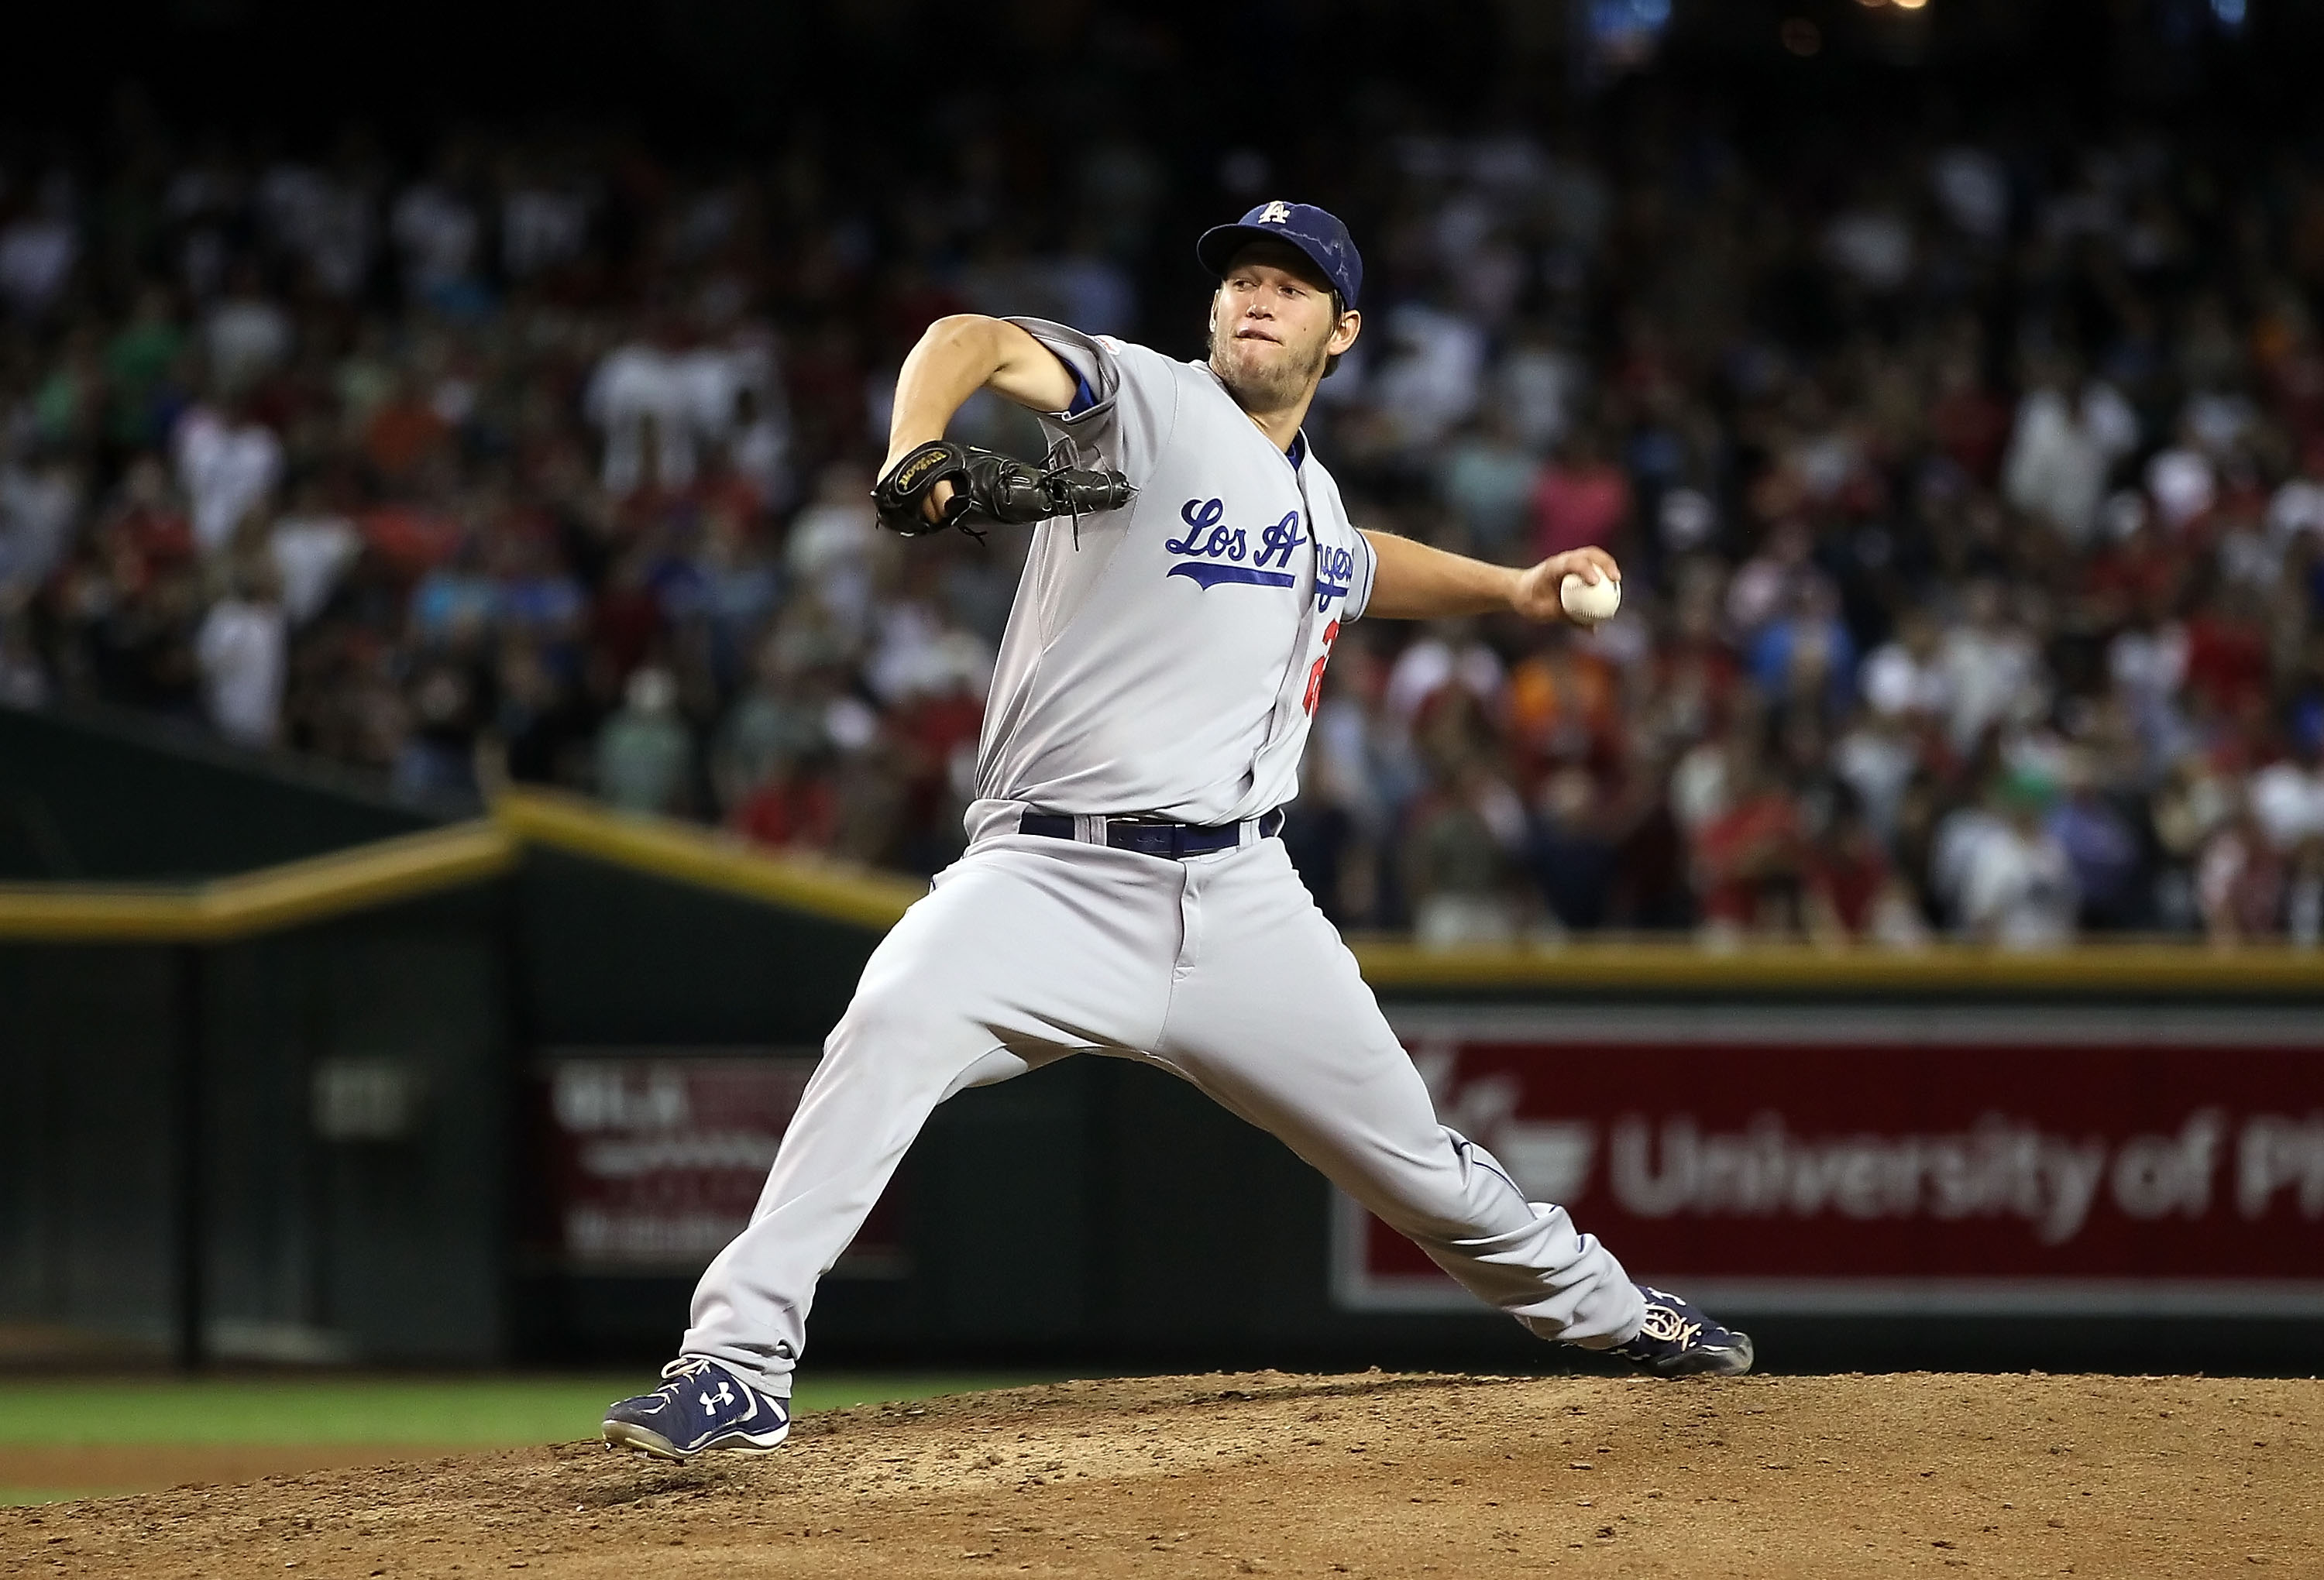 PHOENIX - SEPTEMBER 24:  Starting pitcher Clayton Kershaw #22 of the Los Angeles Dodgers pitches against the Arizona Diamondbacks during the Major League Baseball game at Chase Field on September 24, 2010 in Phoenix, Arizona.  (Photo by Christian Petersen